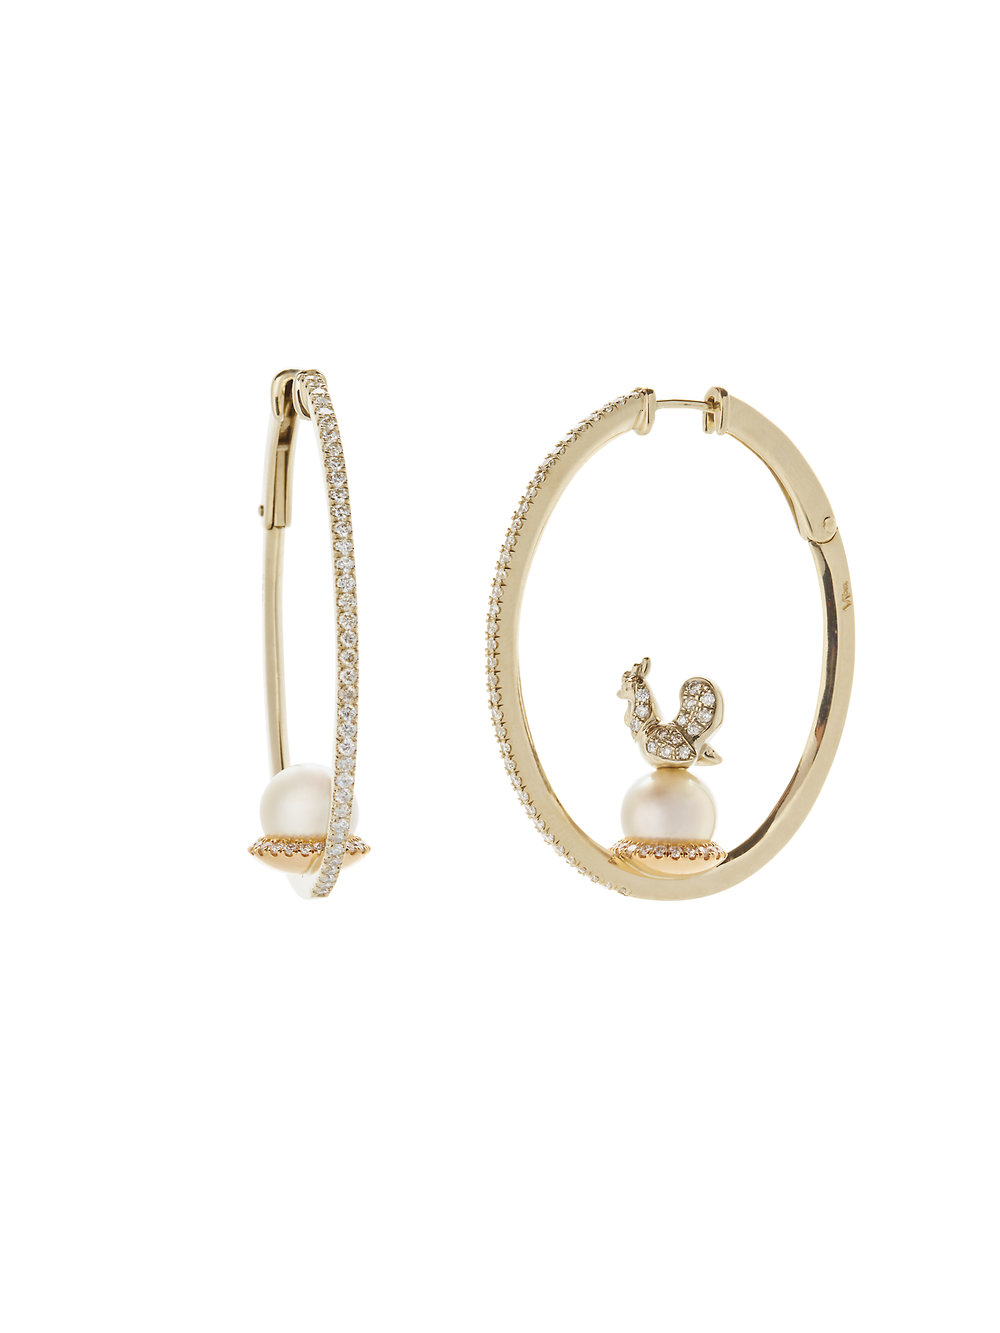 PEARL HOOP WITH ROOSTER    18 K GOLD SOUTH SEA PEARLS .48 CT OF DIAMONDS      Contact for inquiry